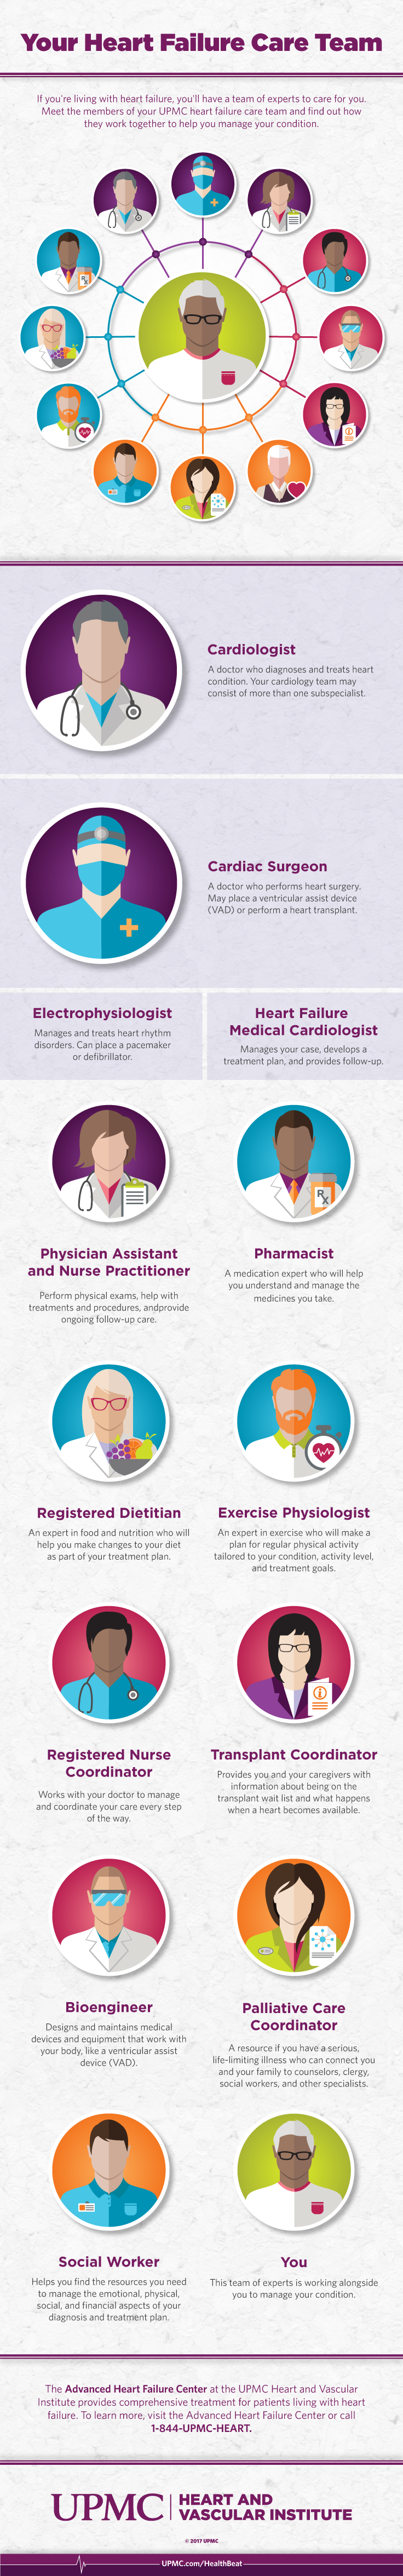 Learn more about the members of your heart failure care team